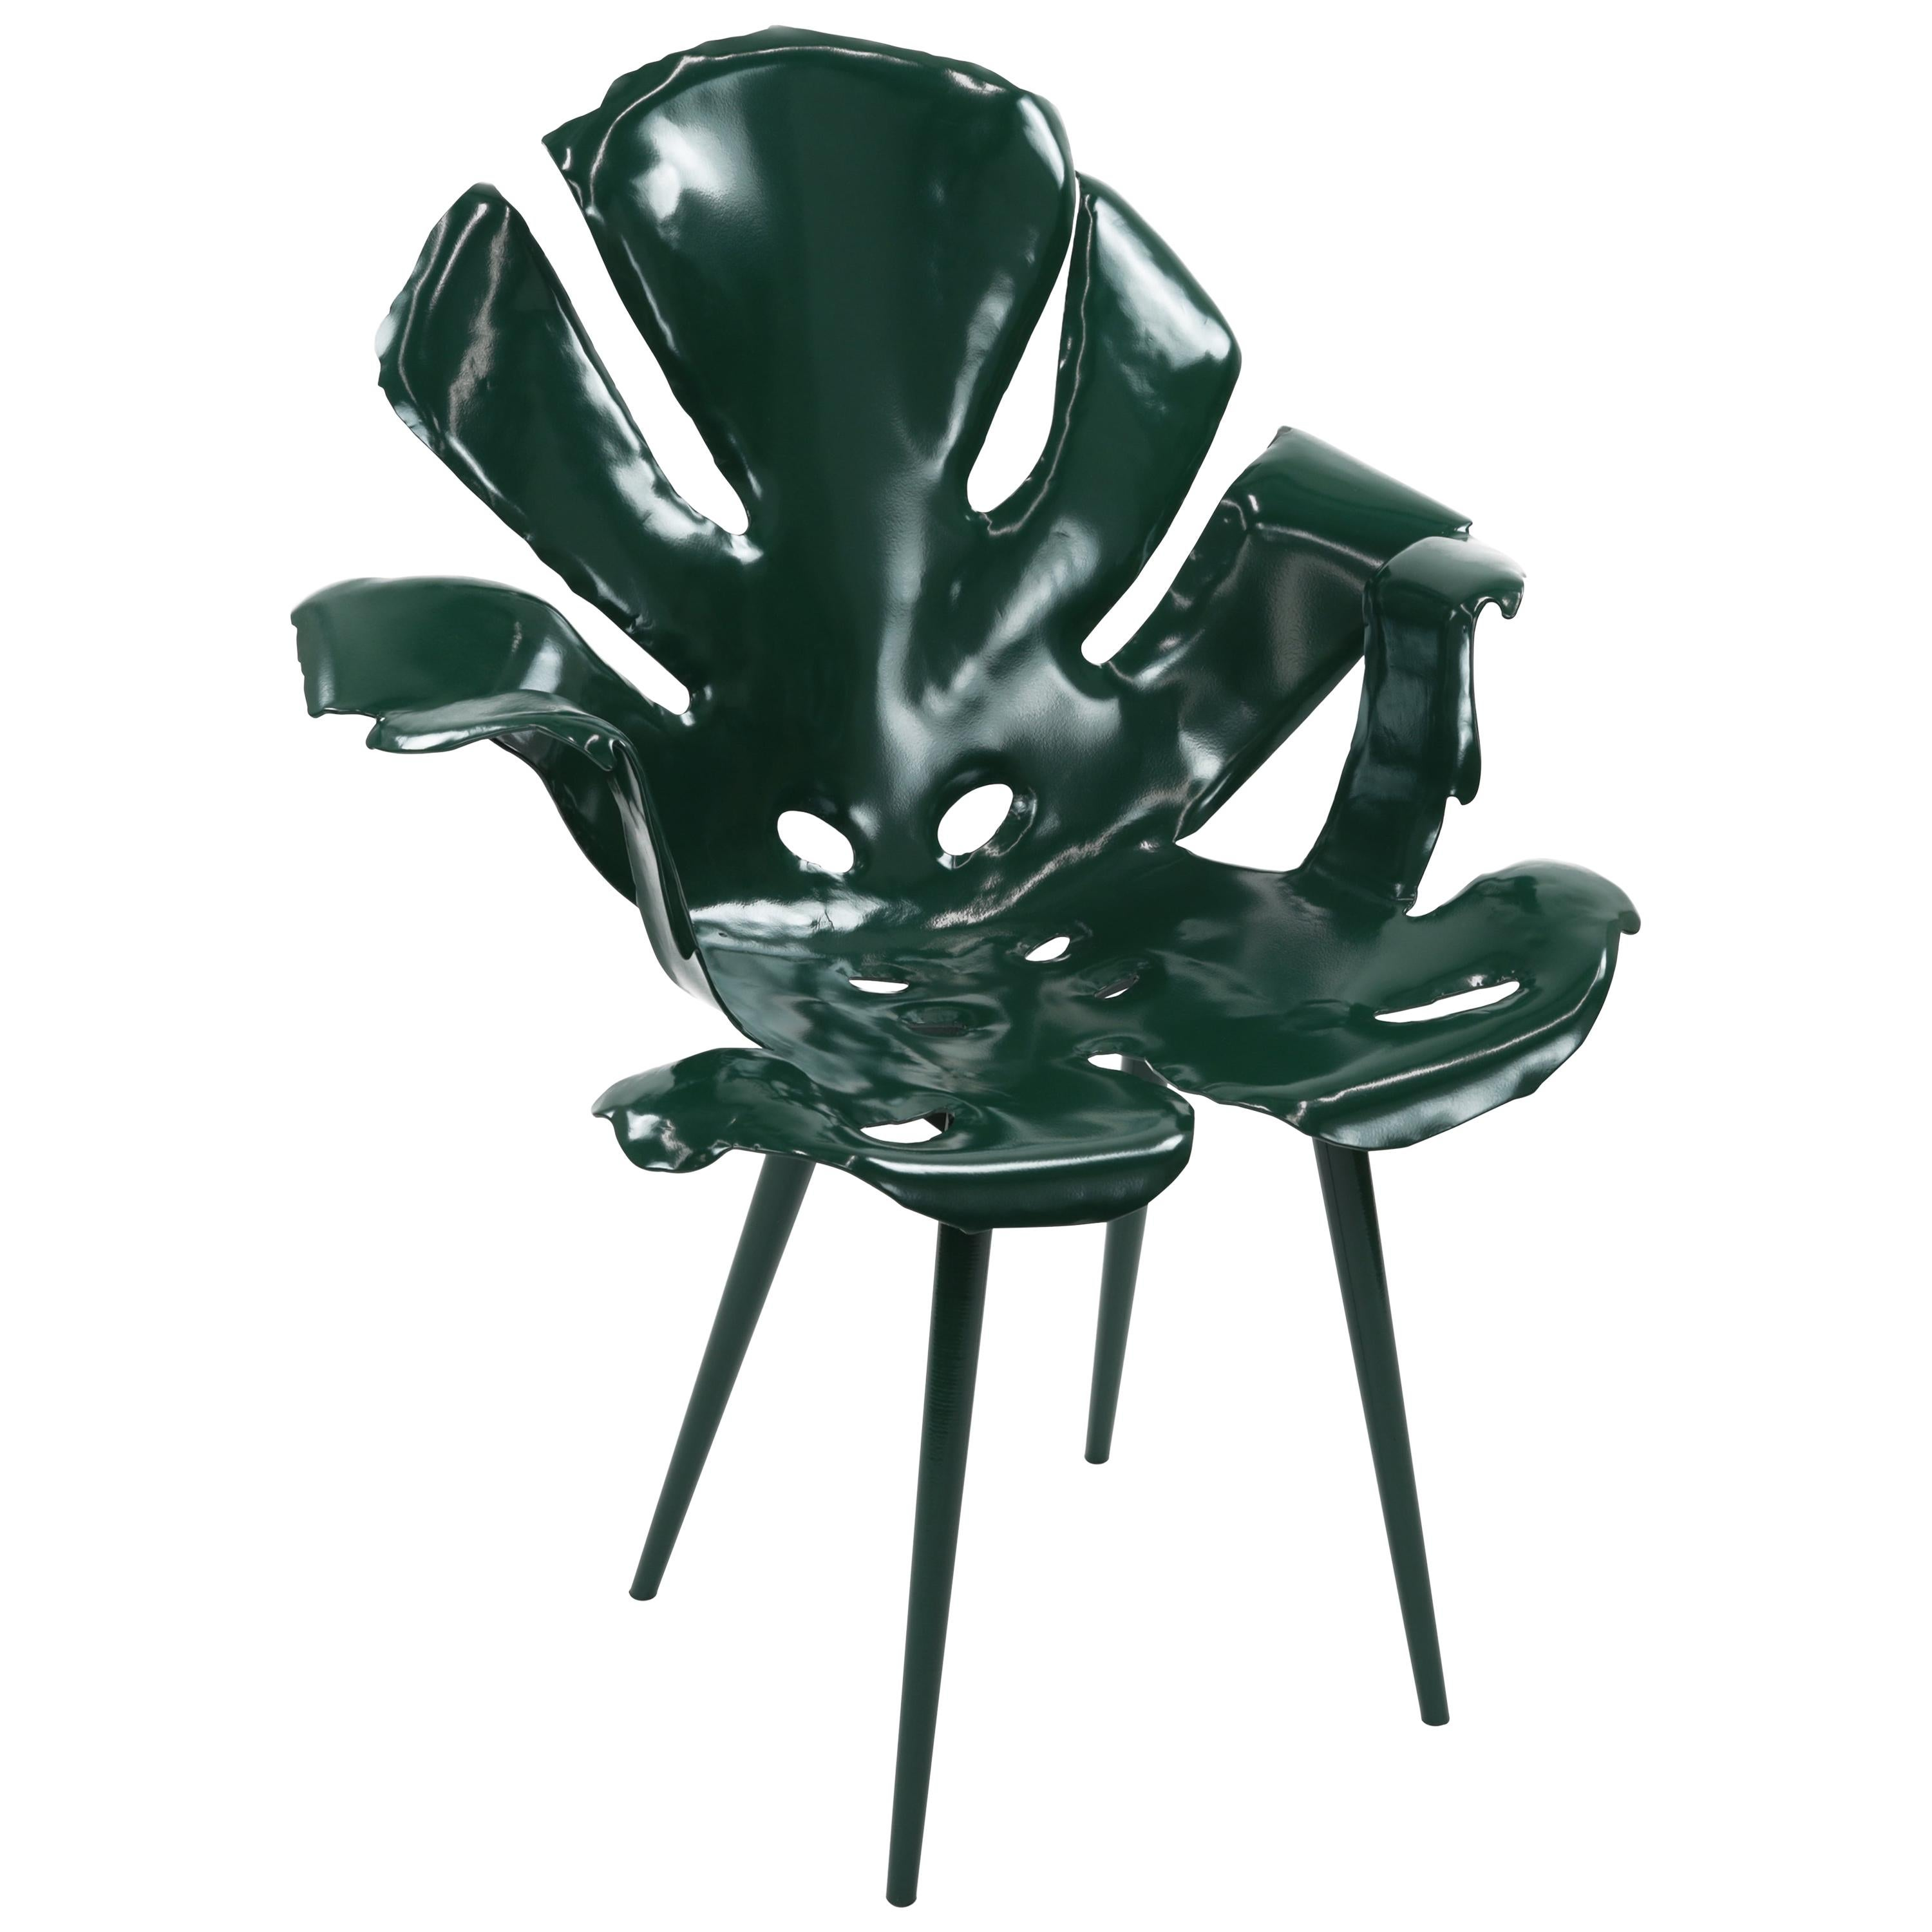 The Philodendron Dining Chair in Powder-Coated Brass by Christopher Kreiling